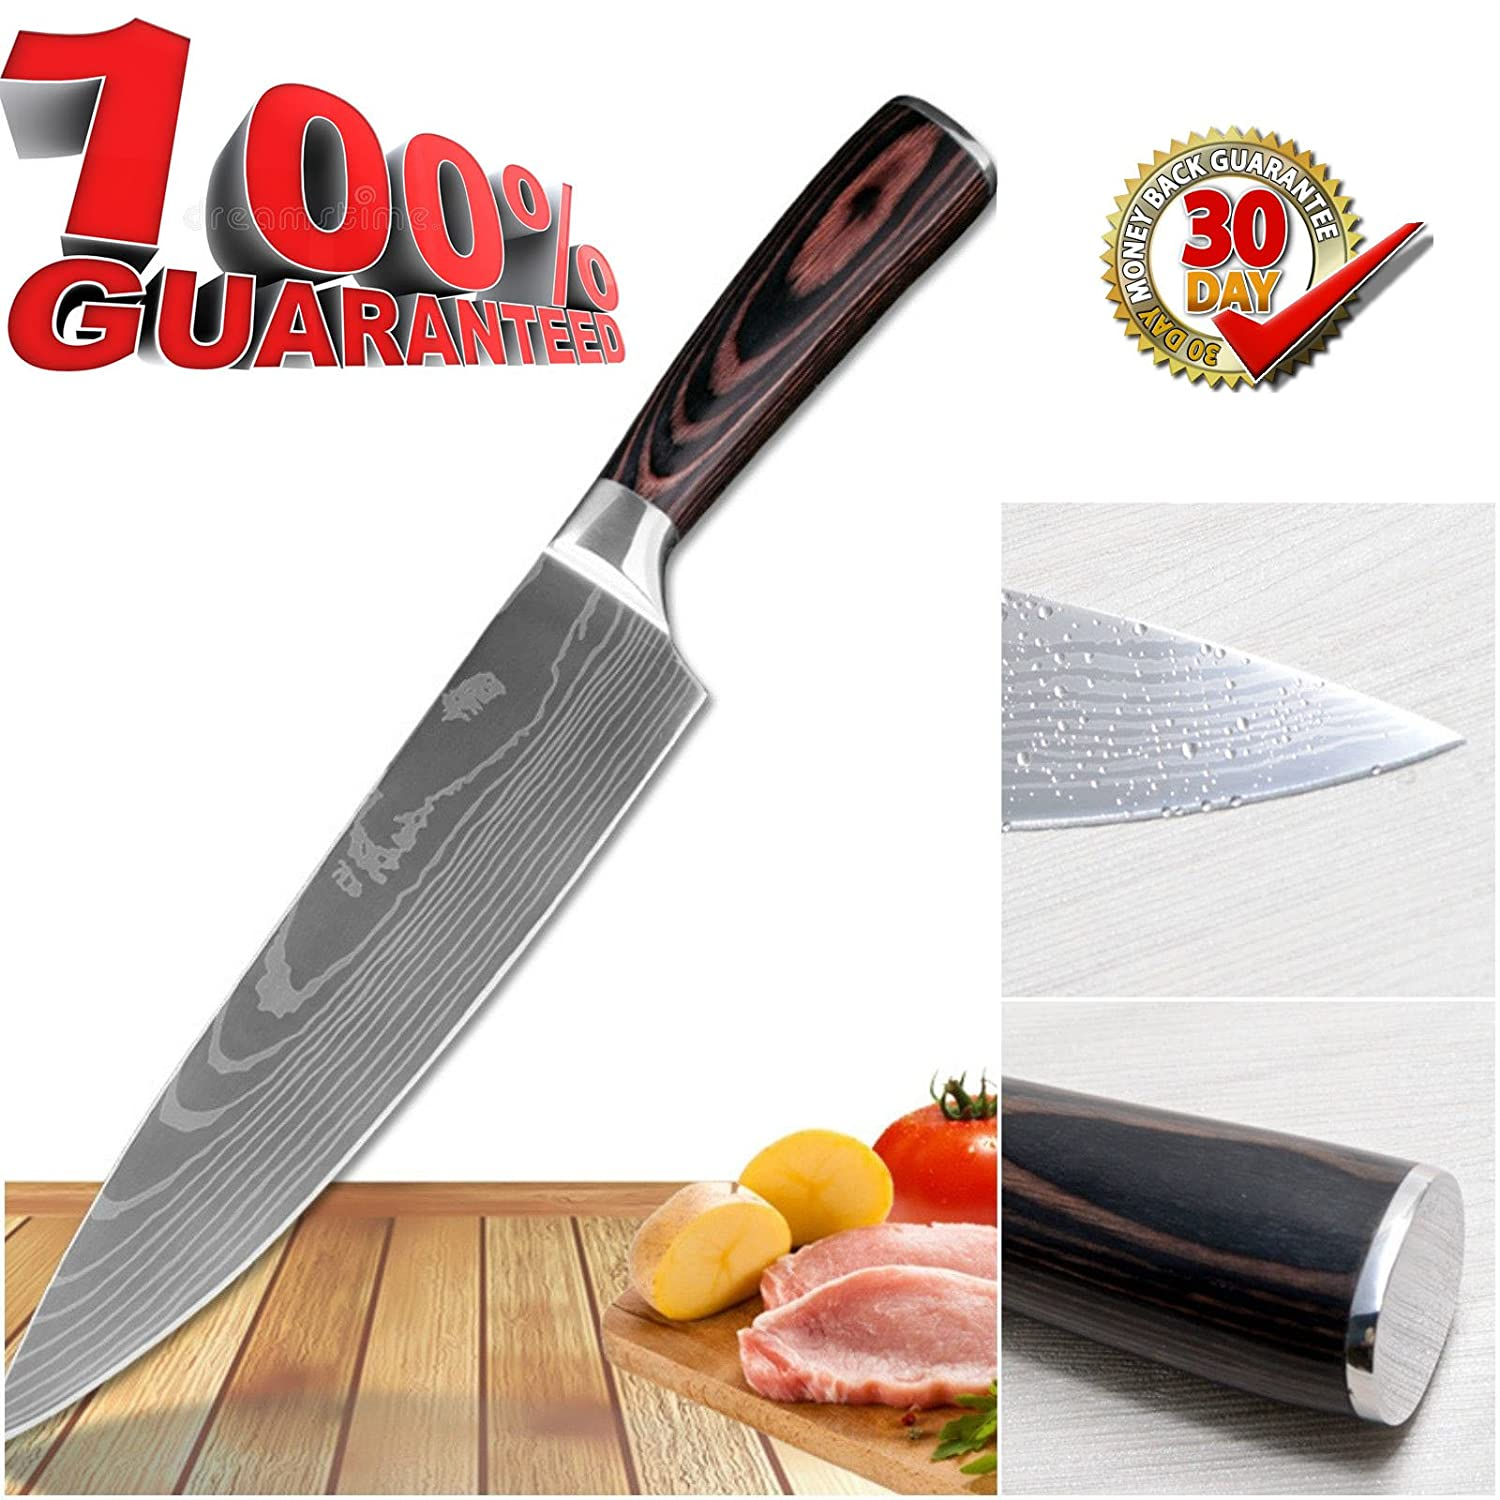 Amazon.com: The Best Quality 8 Inch Chef Knife By Kad ,Professional ...